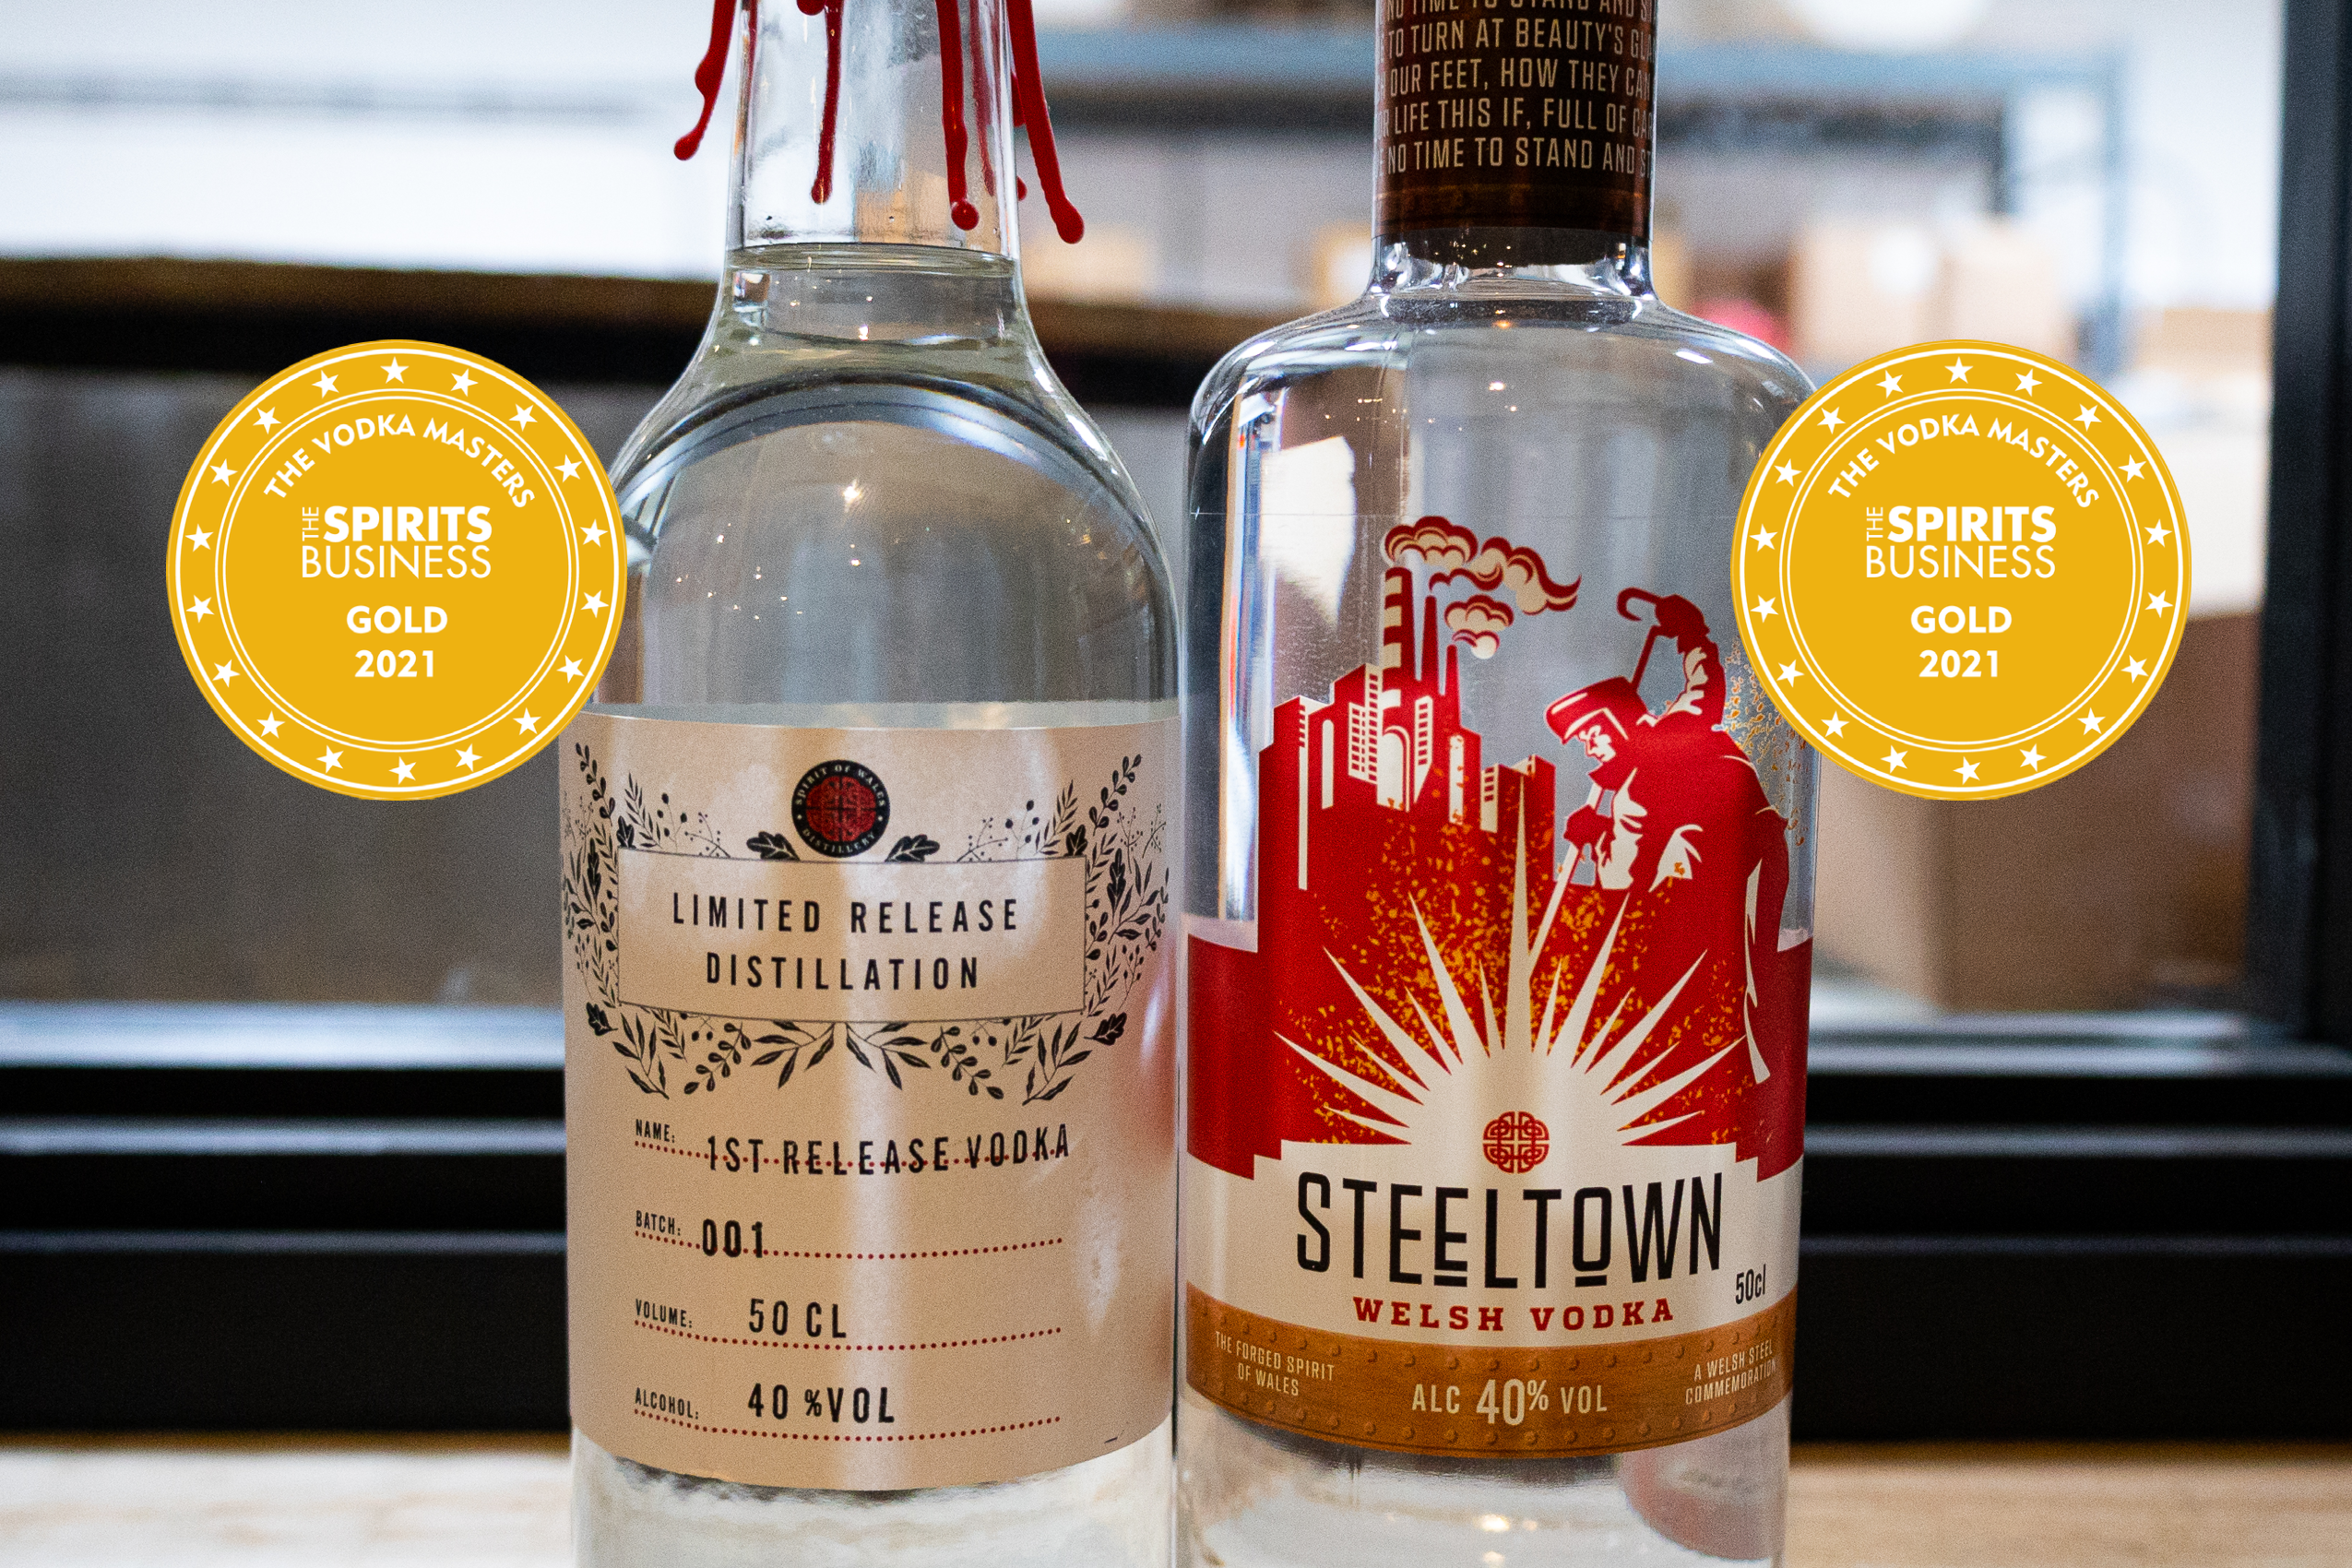 Spirit of Wales Distillery Wins Two Vodka Masters Gold Medals